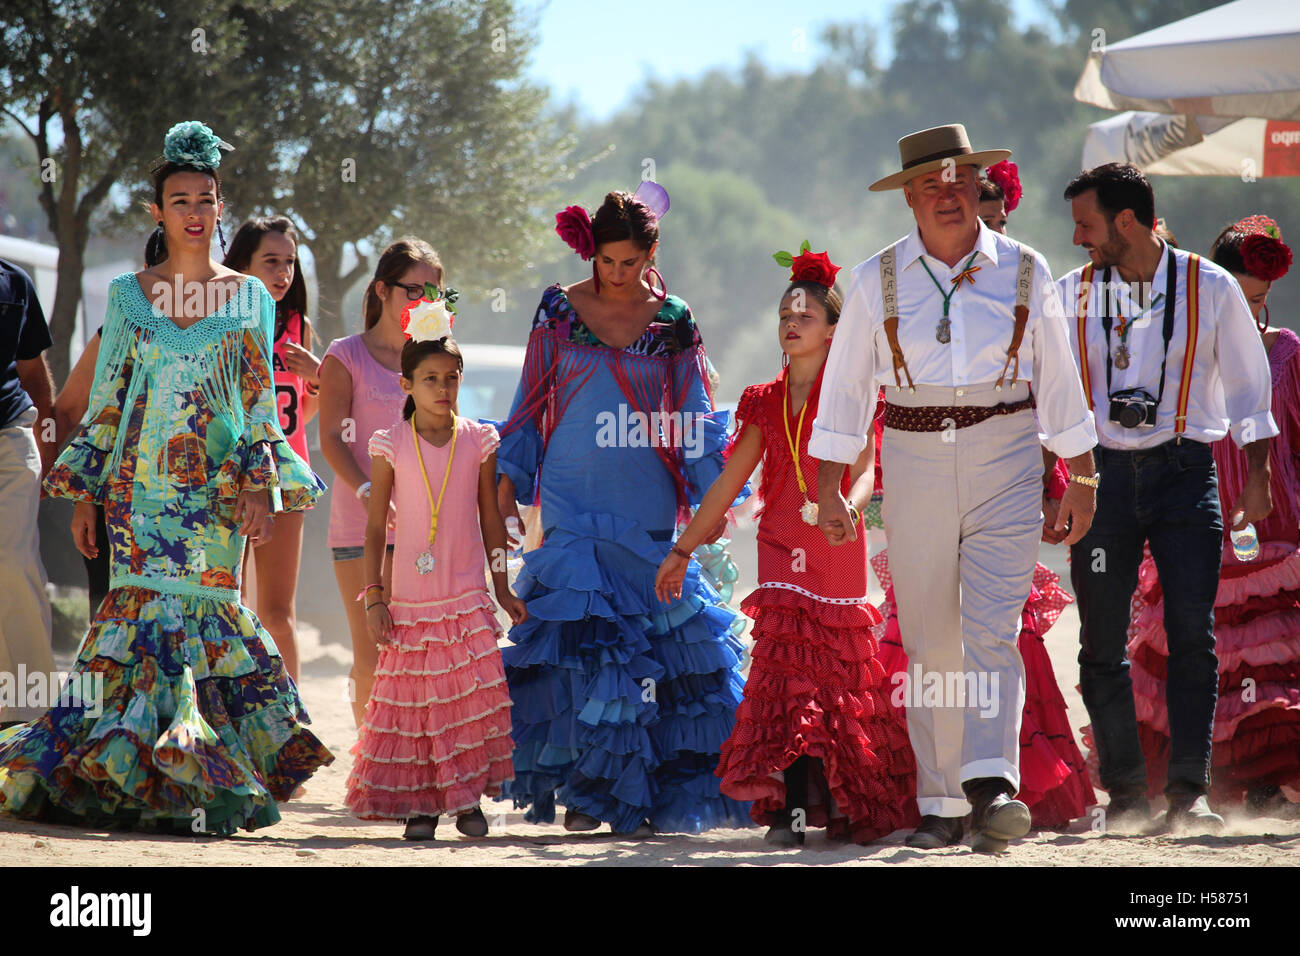 HUELVA/SPAIN - 9 OCTOBER 2016: Piligrims in colorful dresses going to the sunday holy mass at the shrine of El Rocio - Stock Image